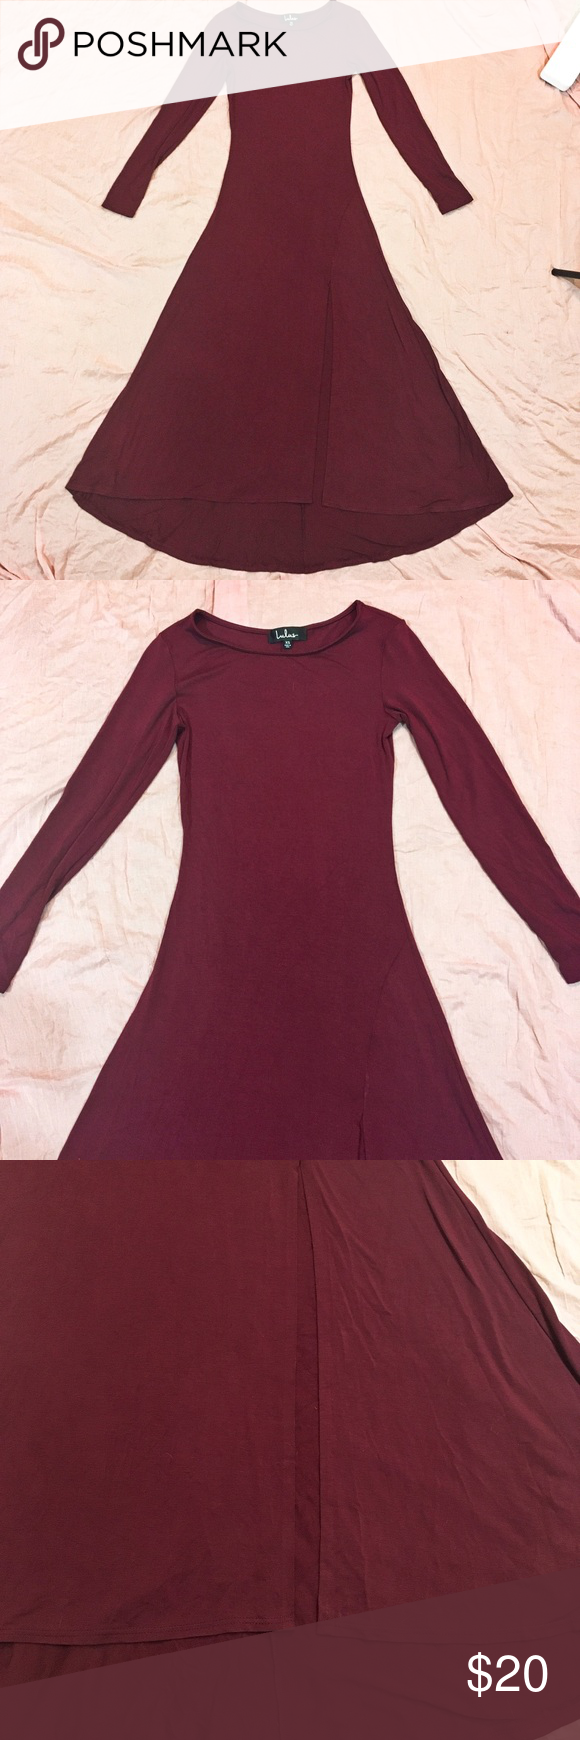 af2a8048ece Lulu s Burgundy Swept Away Maxi Dress XS Burgundy body con maxi dress from  Lulu